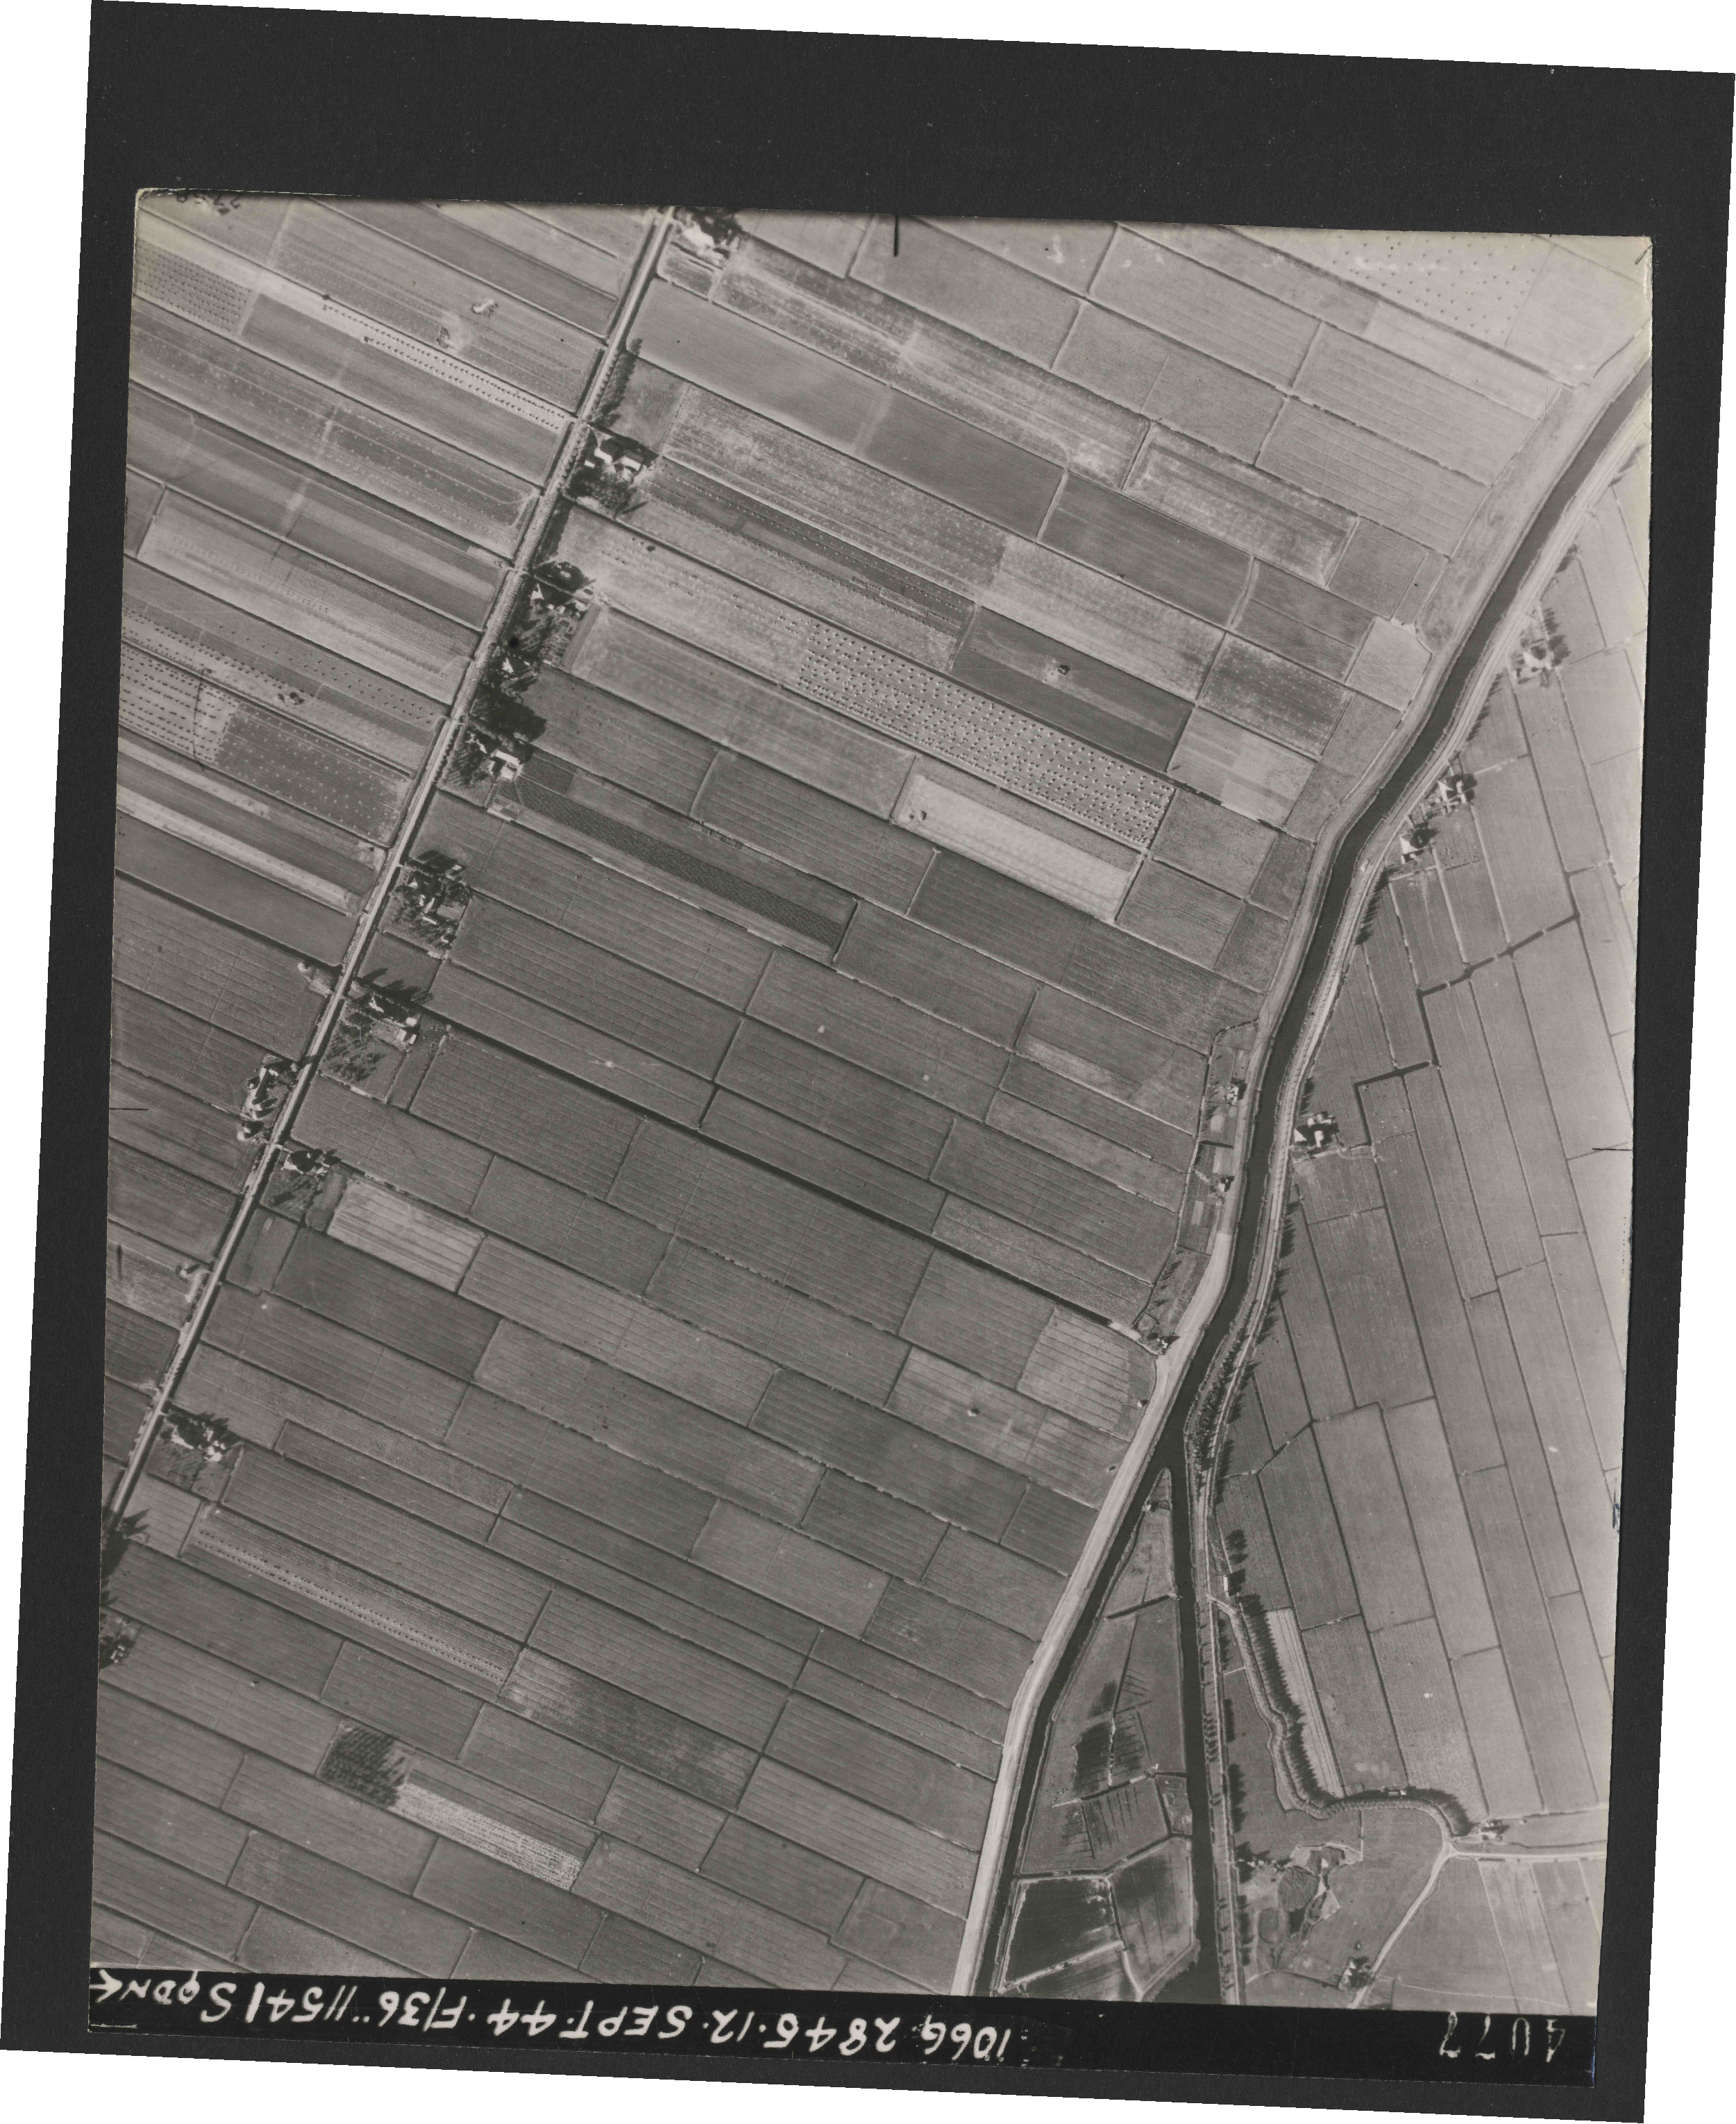 Collection RAF aerial photos 1940-1945 - flight 299, run 04, photo 4077